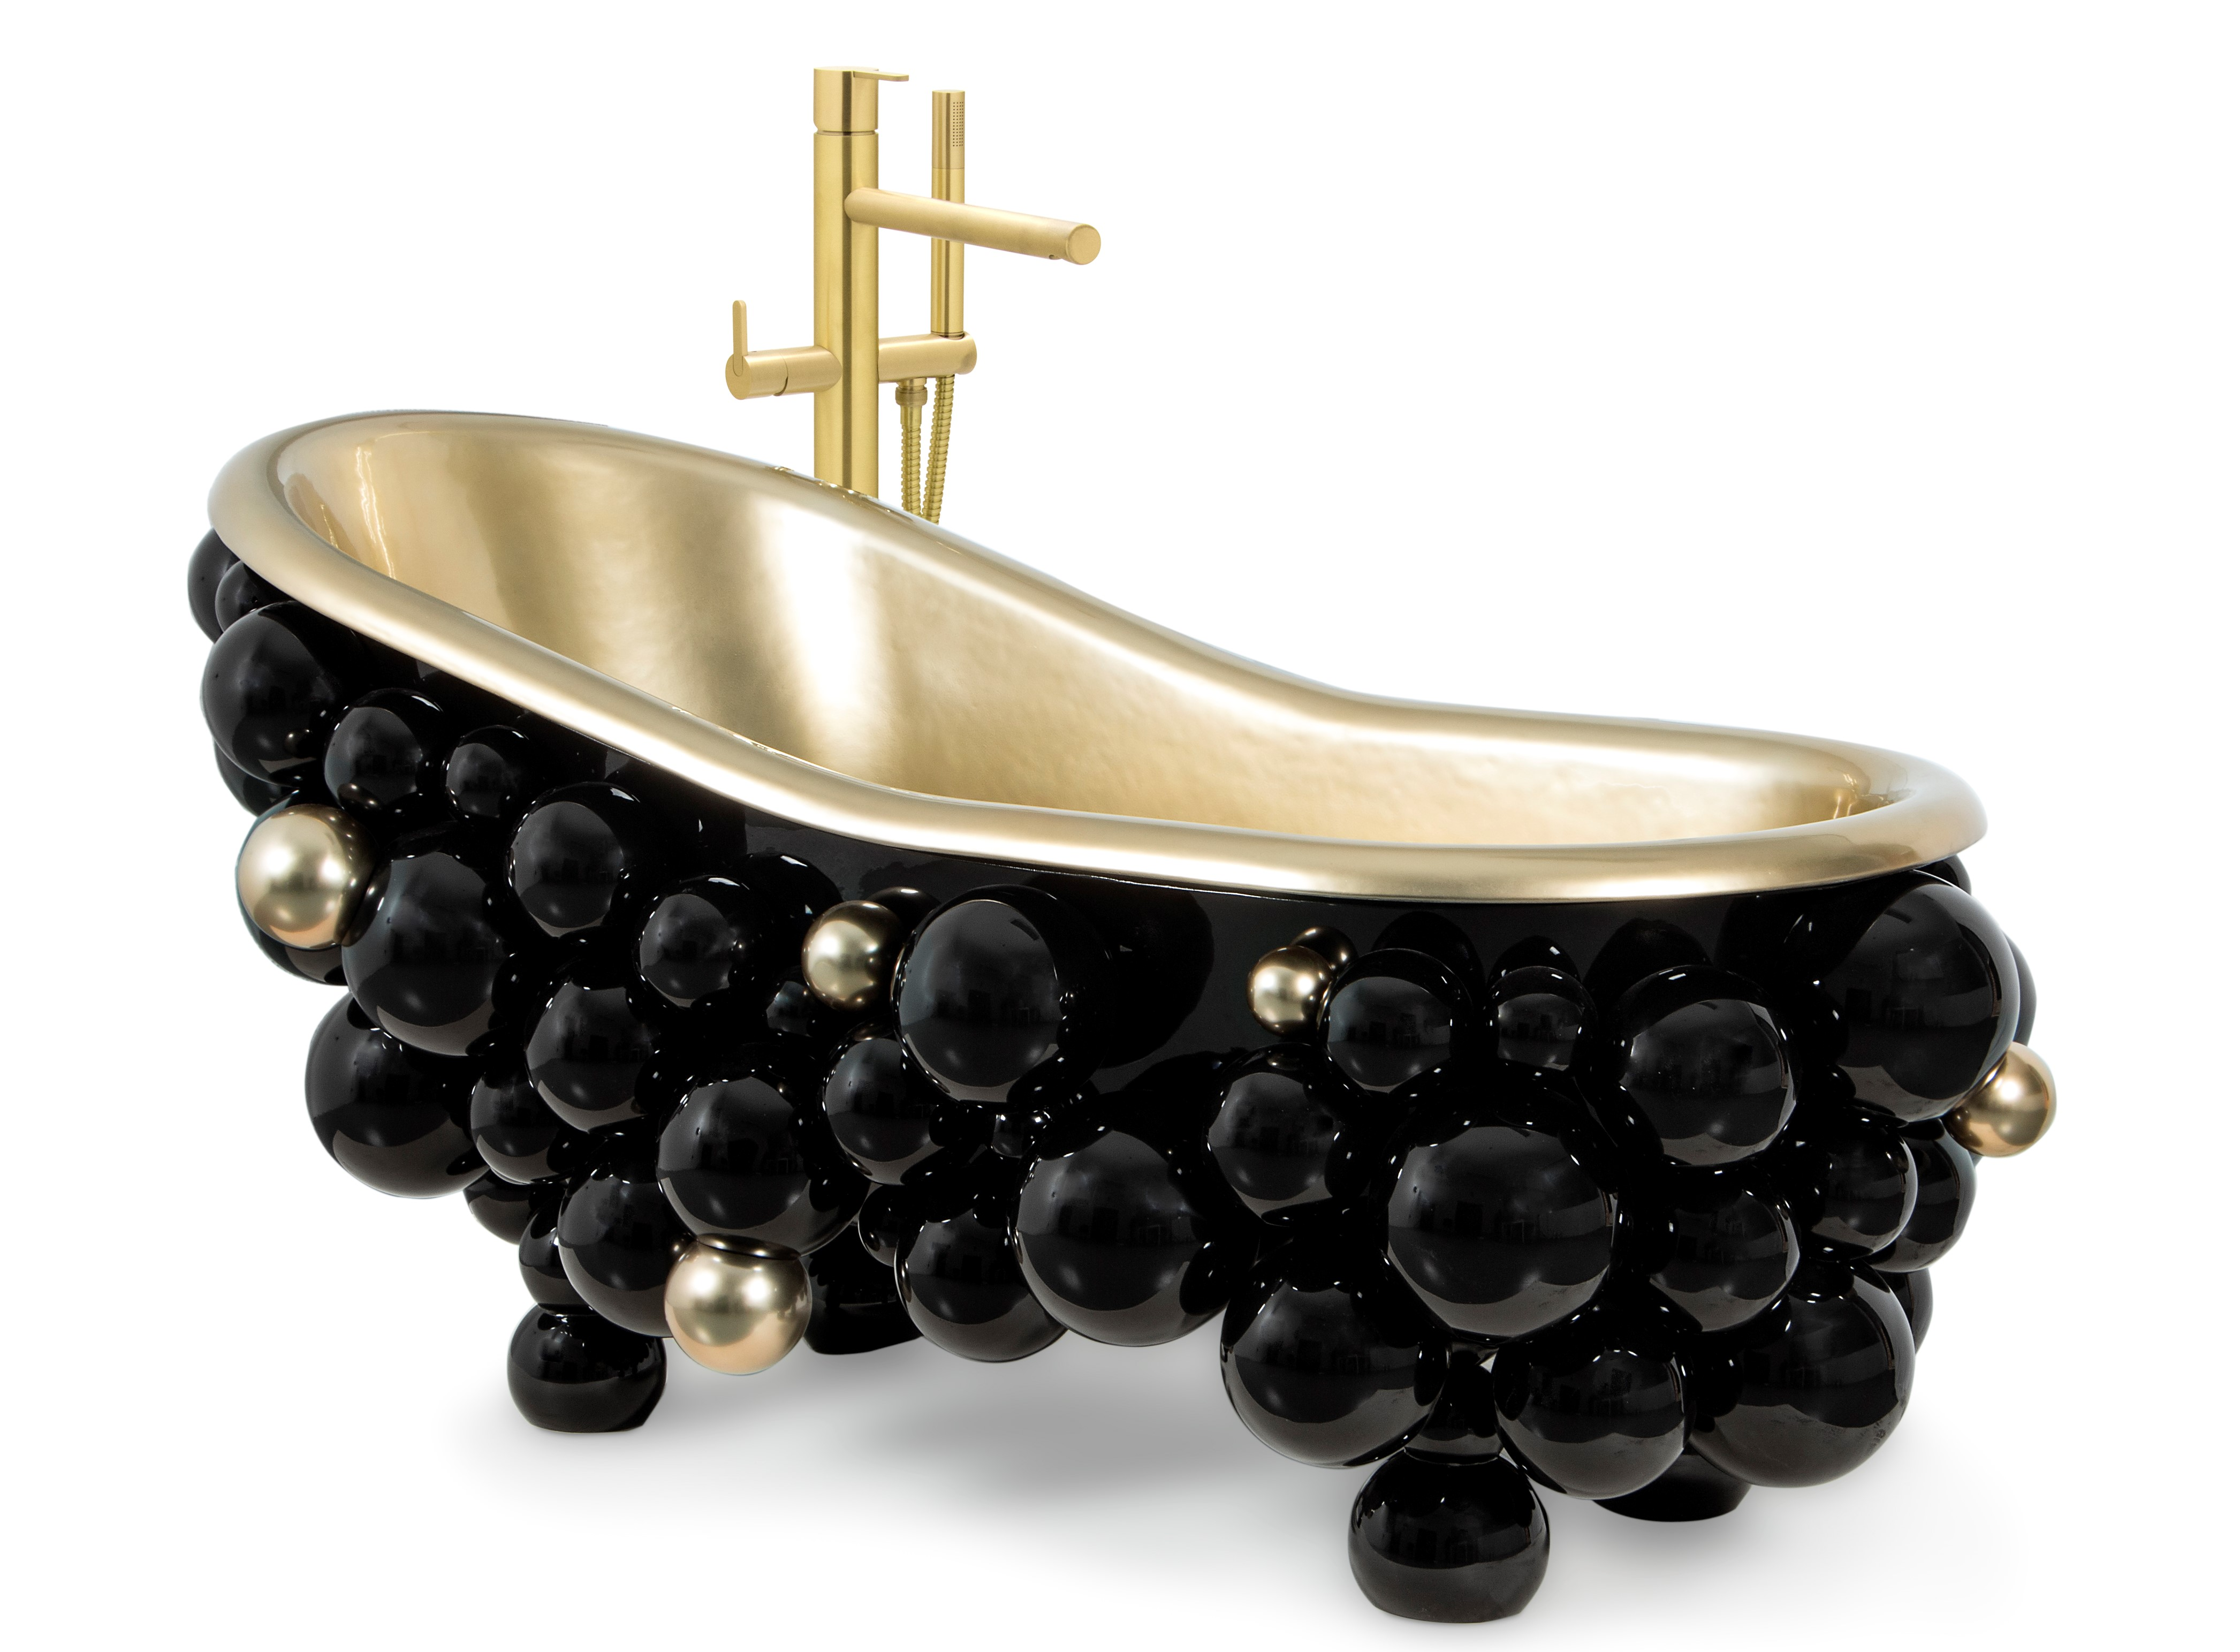 Black Bathtubs for Luxury Bathroom Ideas black bathtubs newton bathtub 2 1